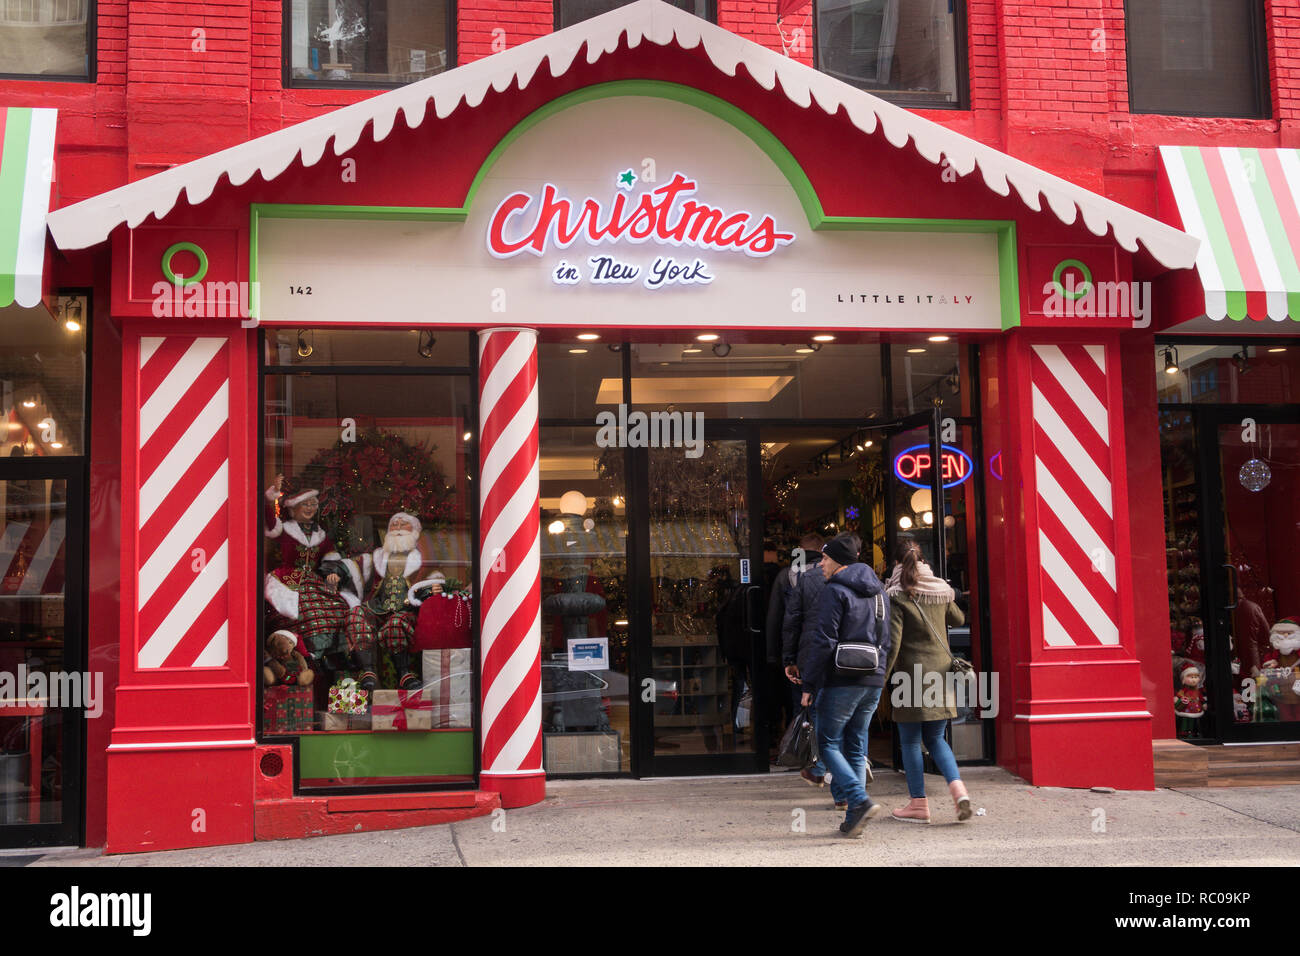 Little Christmas Italy.Christmas In New York Shop In Little Italy Nyc Usa Stock